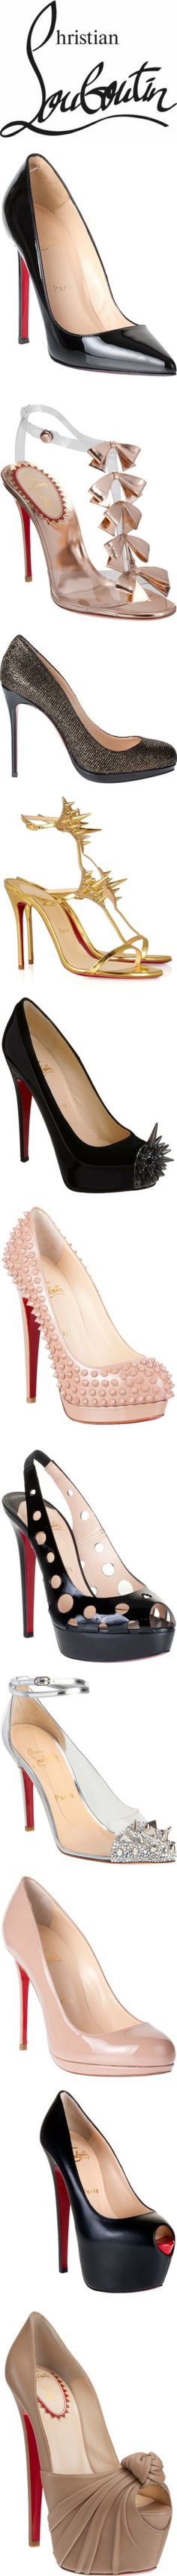 Christian Louboutin and a sample of his wonderful collection of gorgeous High Heels